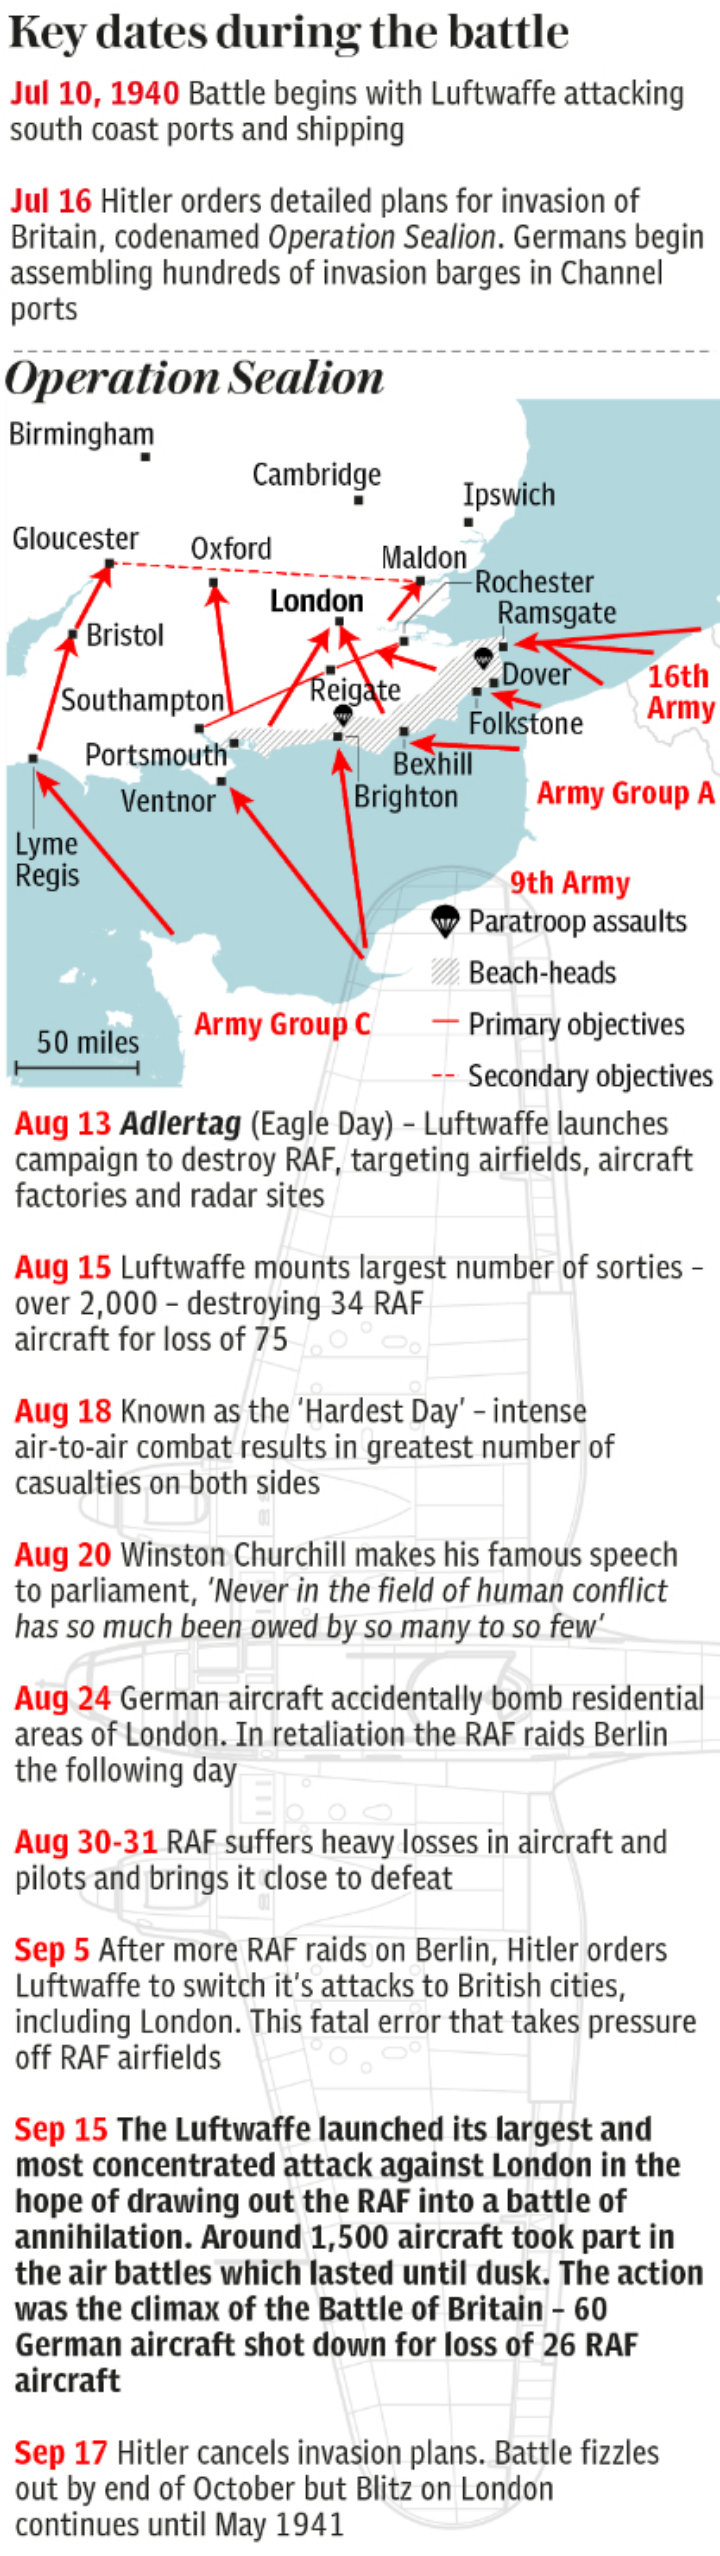 Key dates of the Battle of Britain